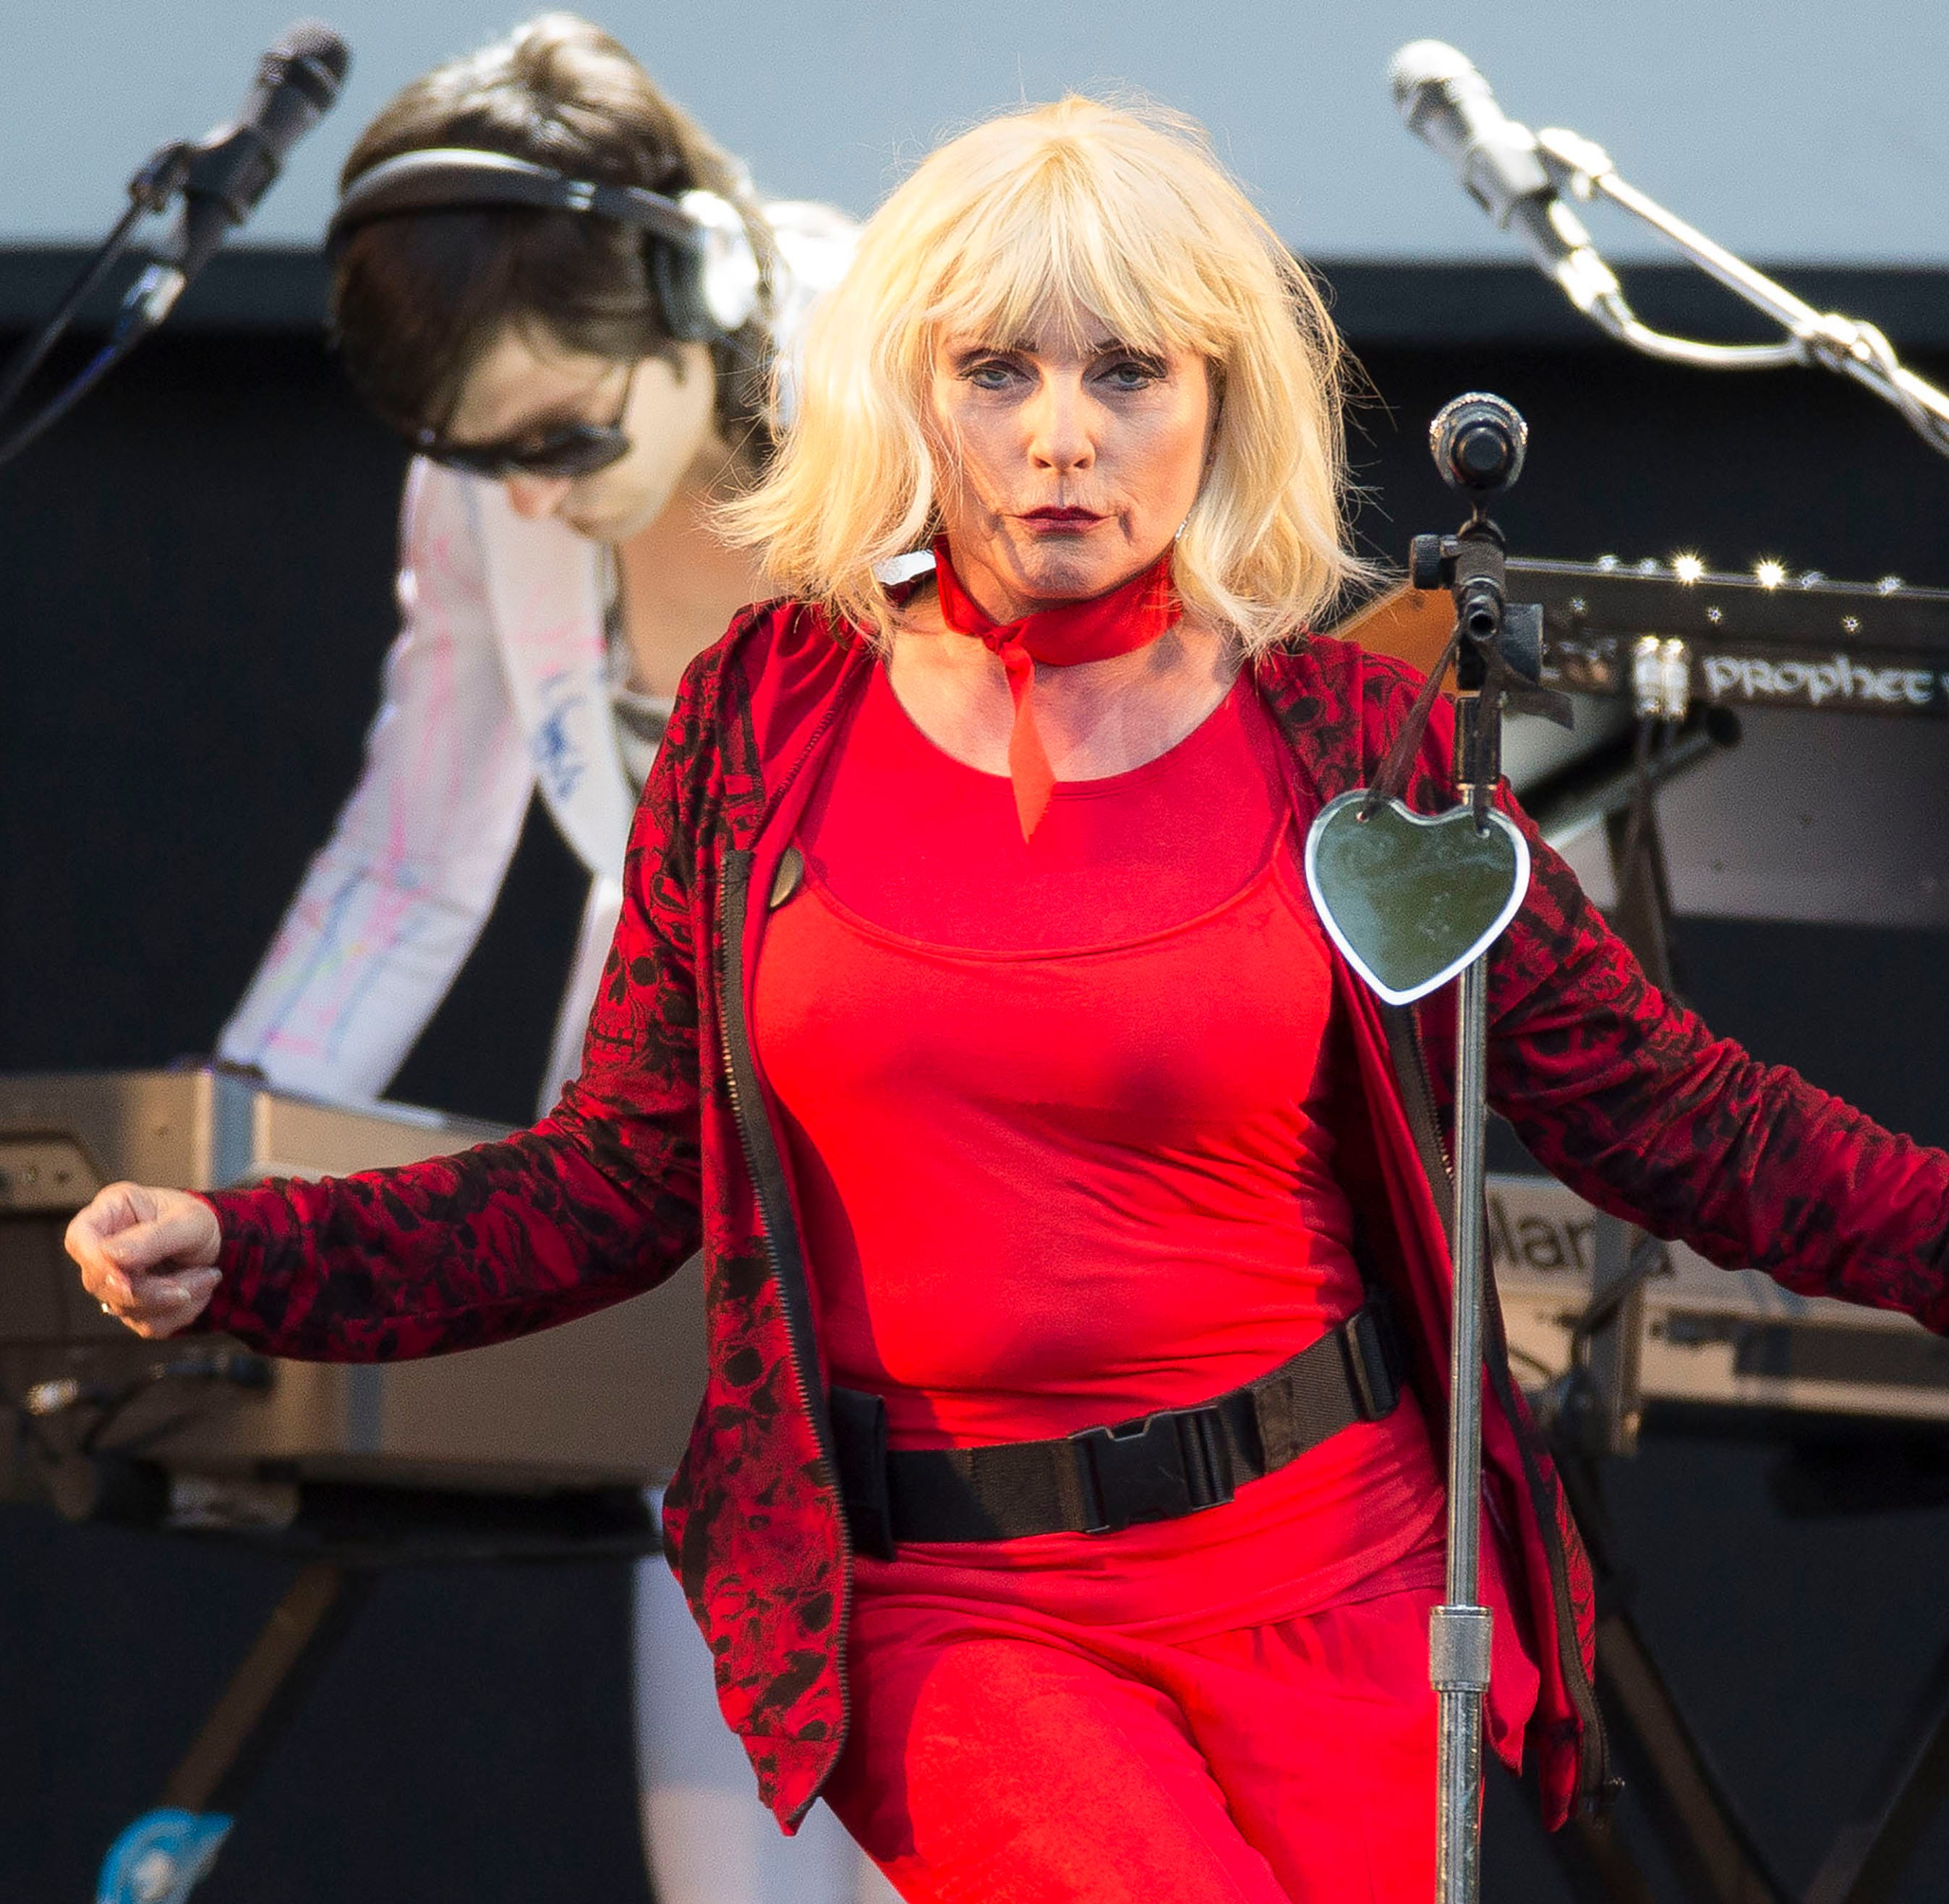 Debbie Harry, lead singer of Blondie, performs in England in 2014.